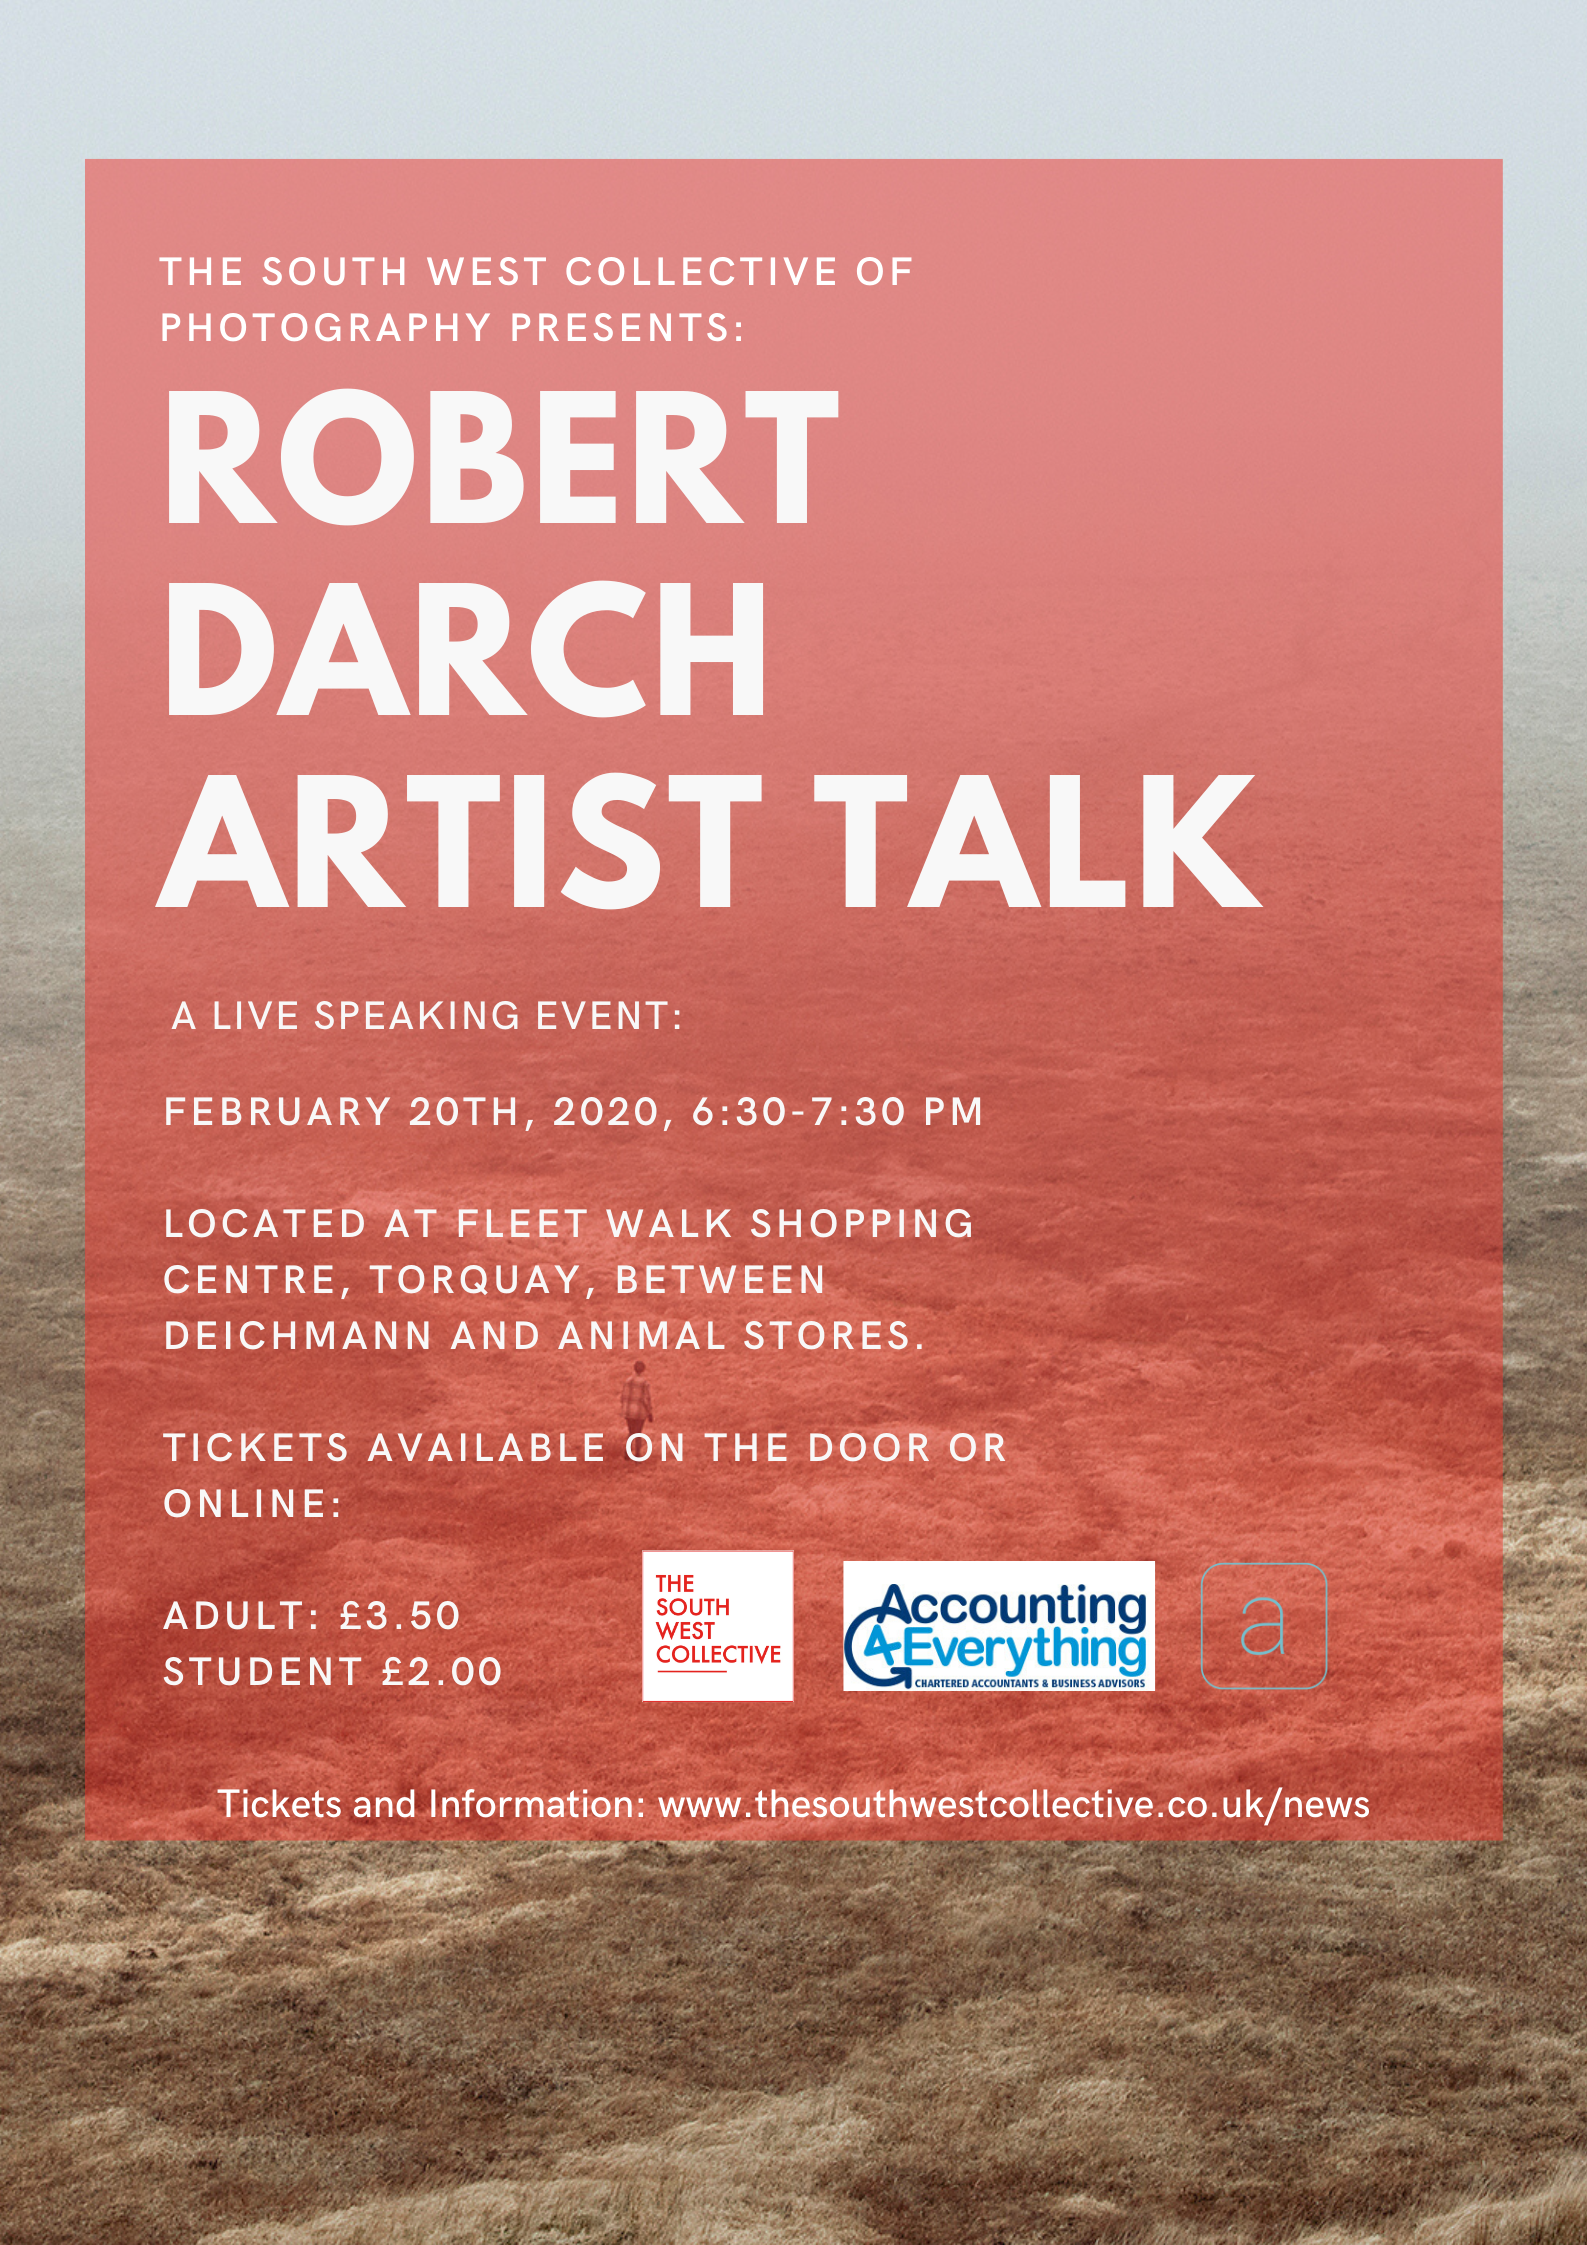 Torbays First Photographic exhibition visual storytelling Robert Darch artist talk the south west collective of photography